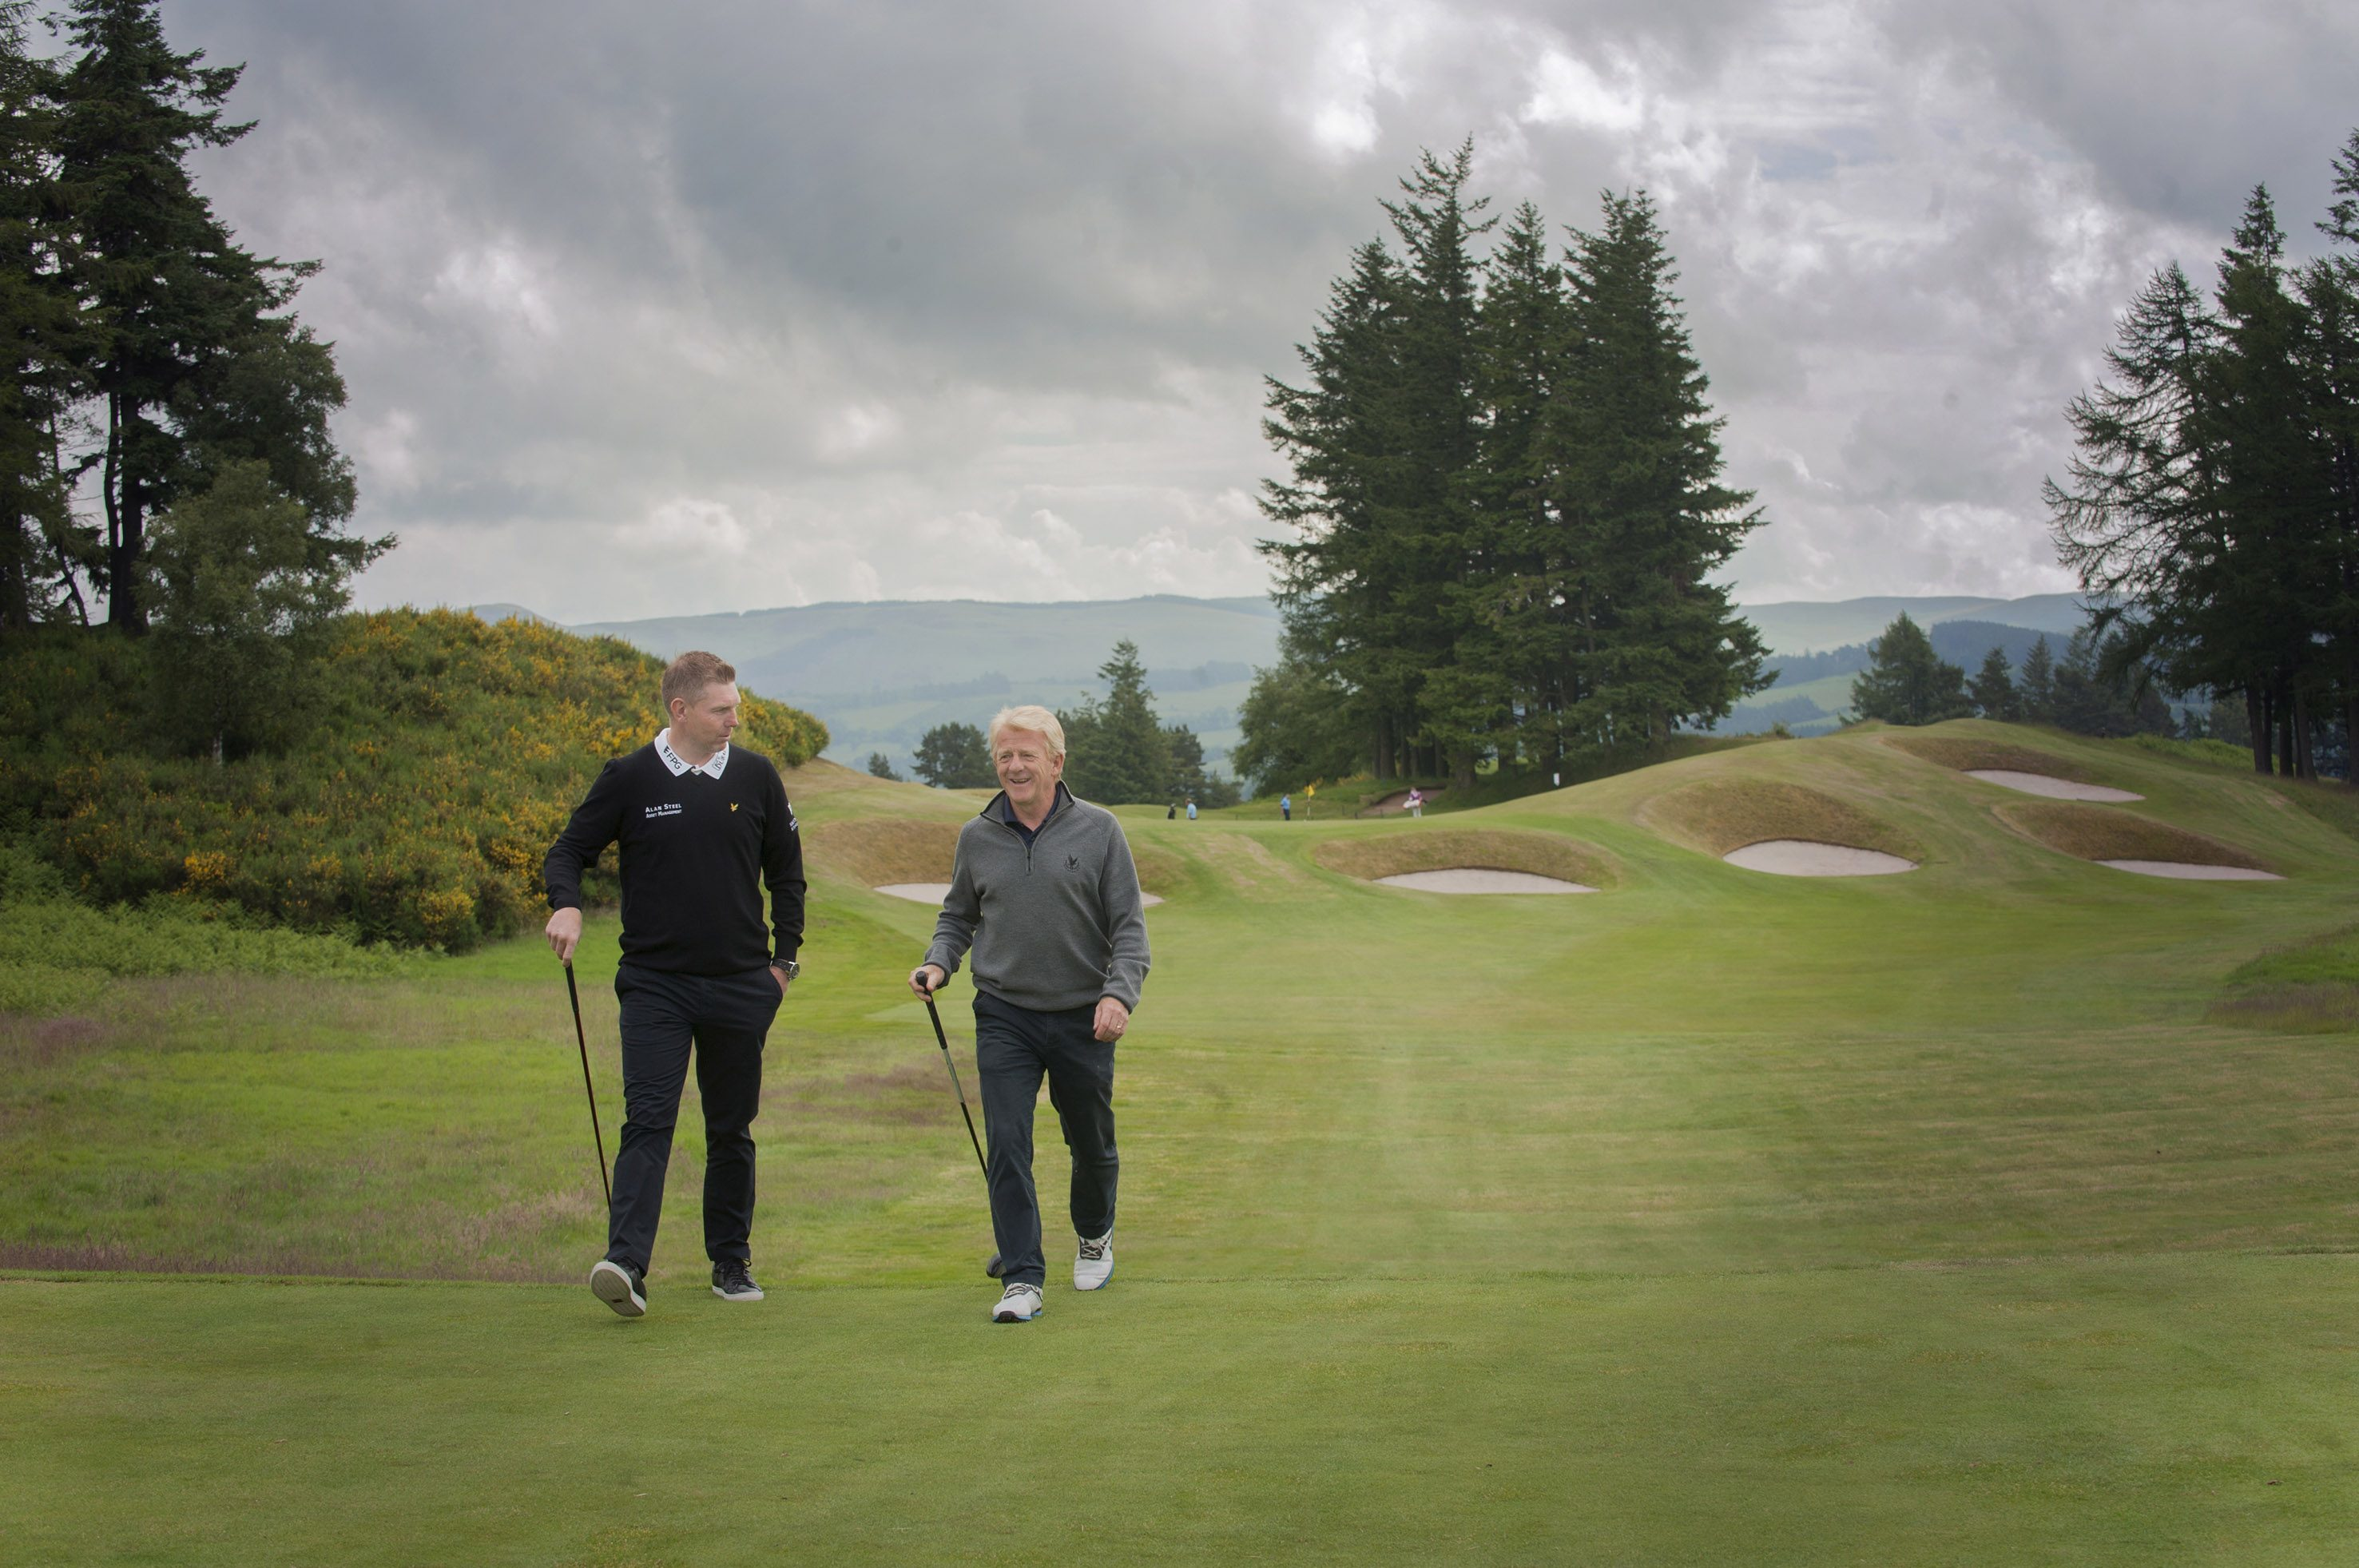 Gleneagles golf course will hold next years Solheim Cup